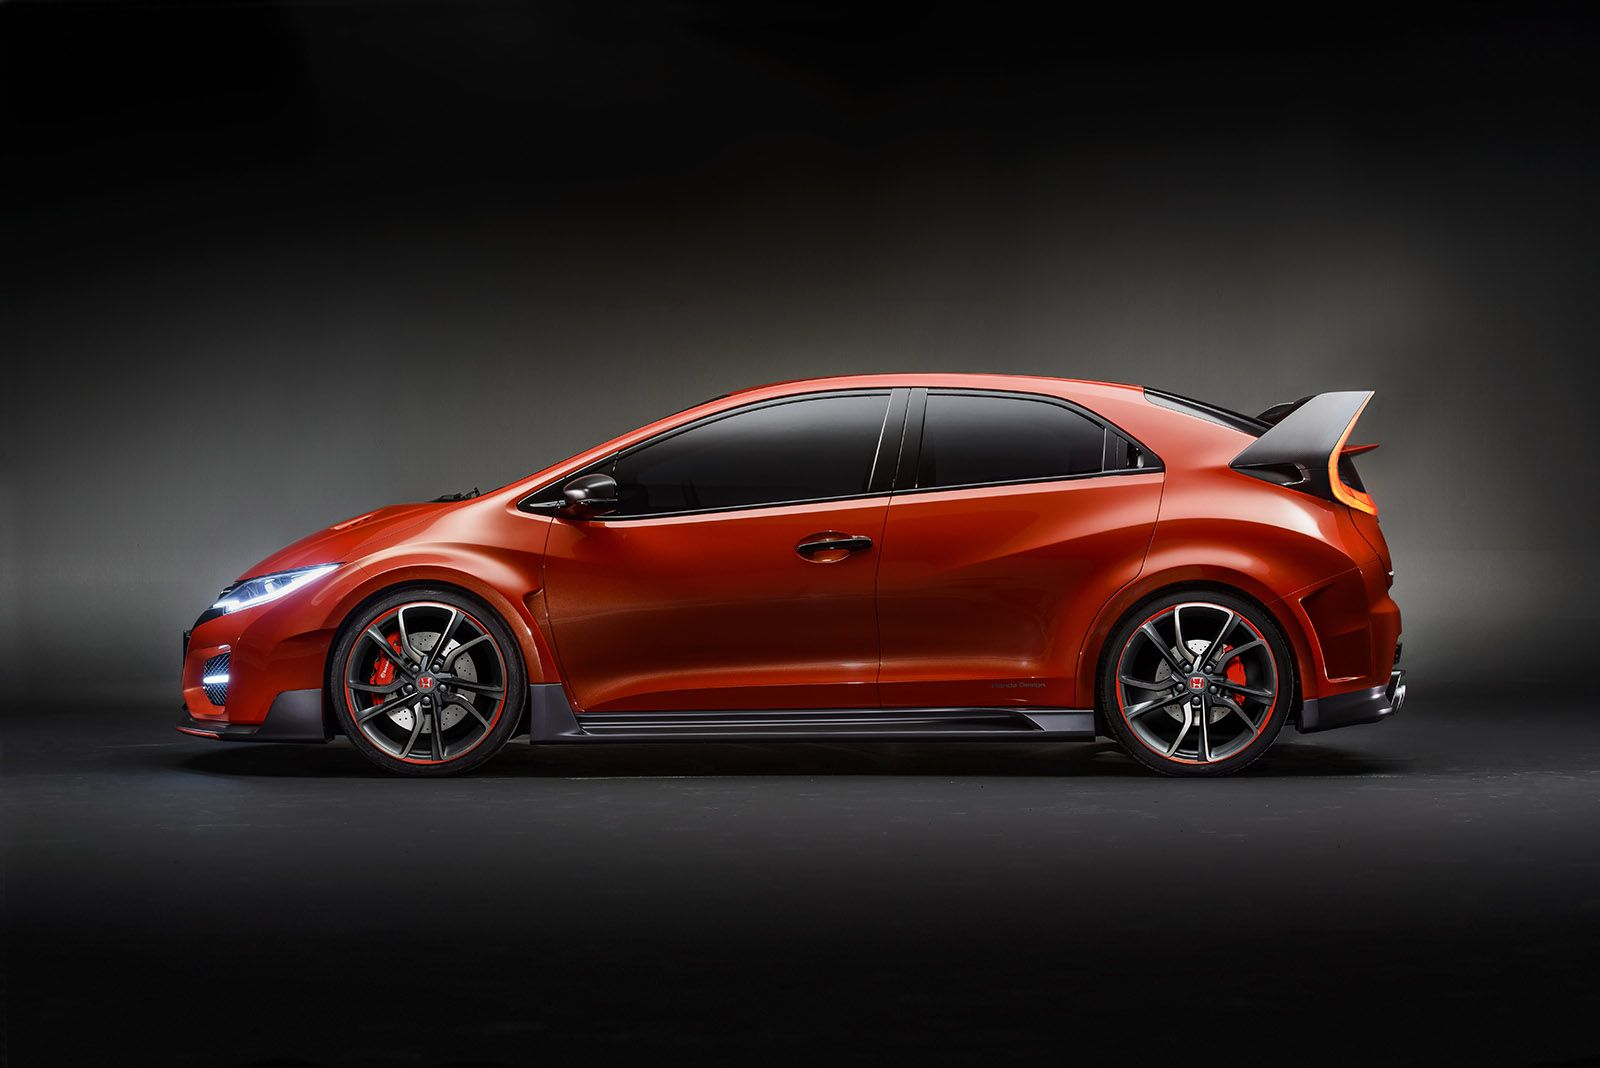 2015 Honda Civic Type R Going Beyond Speed and